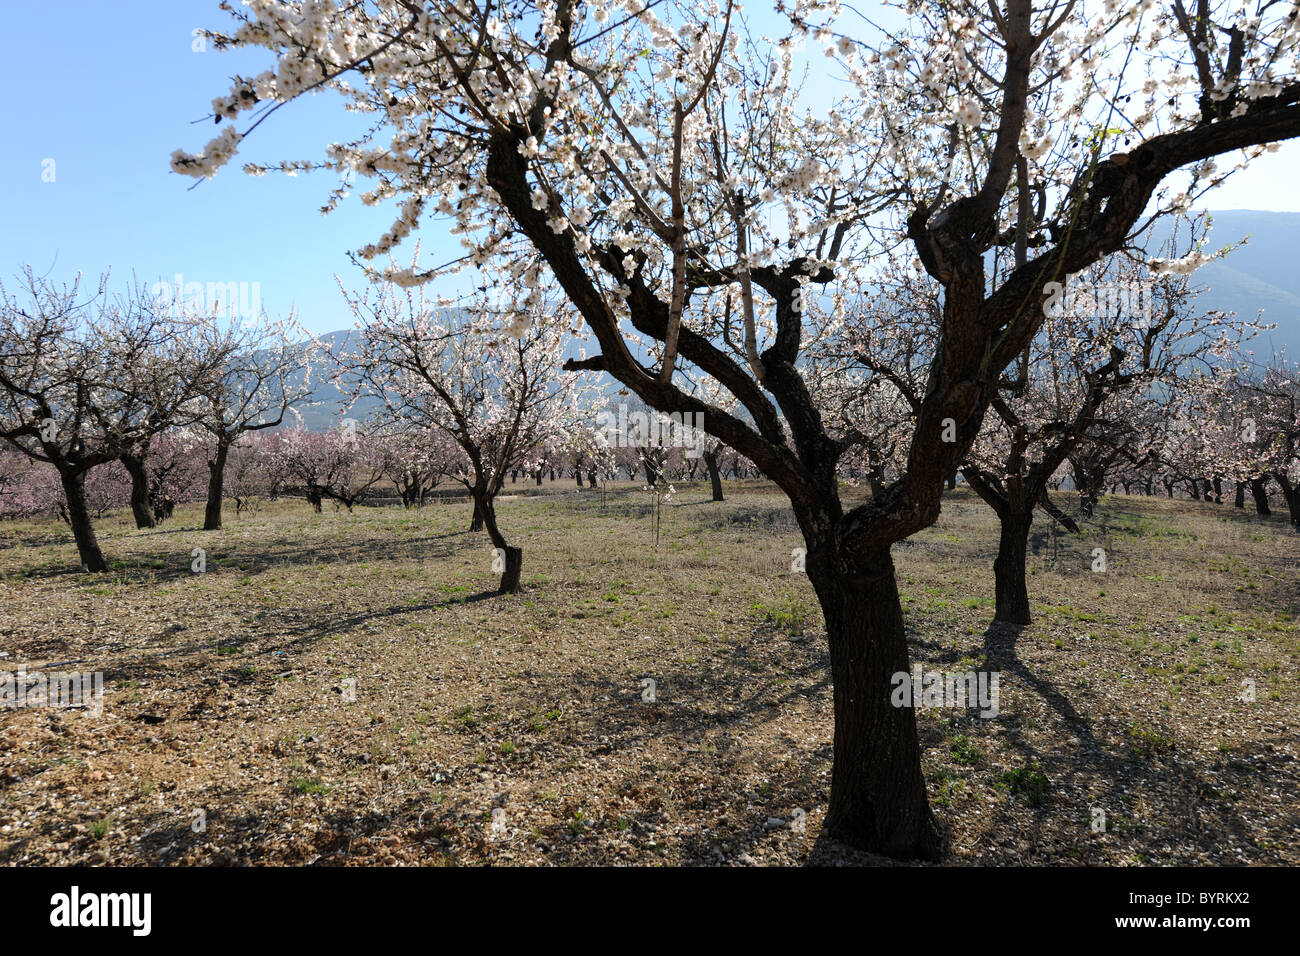 back-lit blossom on almond trees in an orchard near Alcalali, (Jalon Valley), Alicante Province, Valencia, Spain - Stock Image